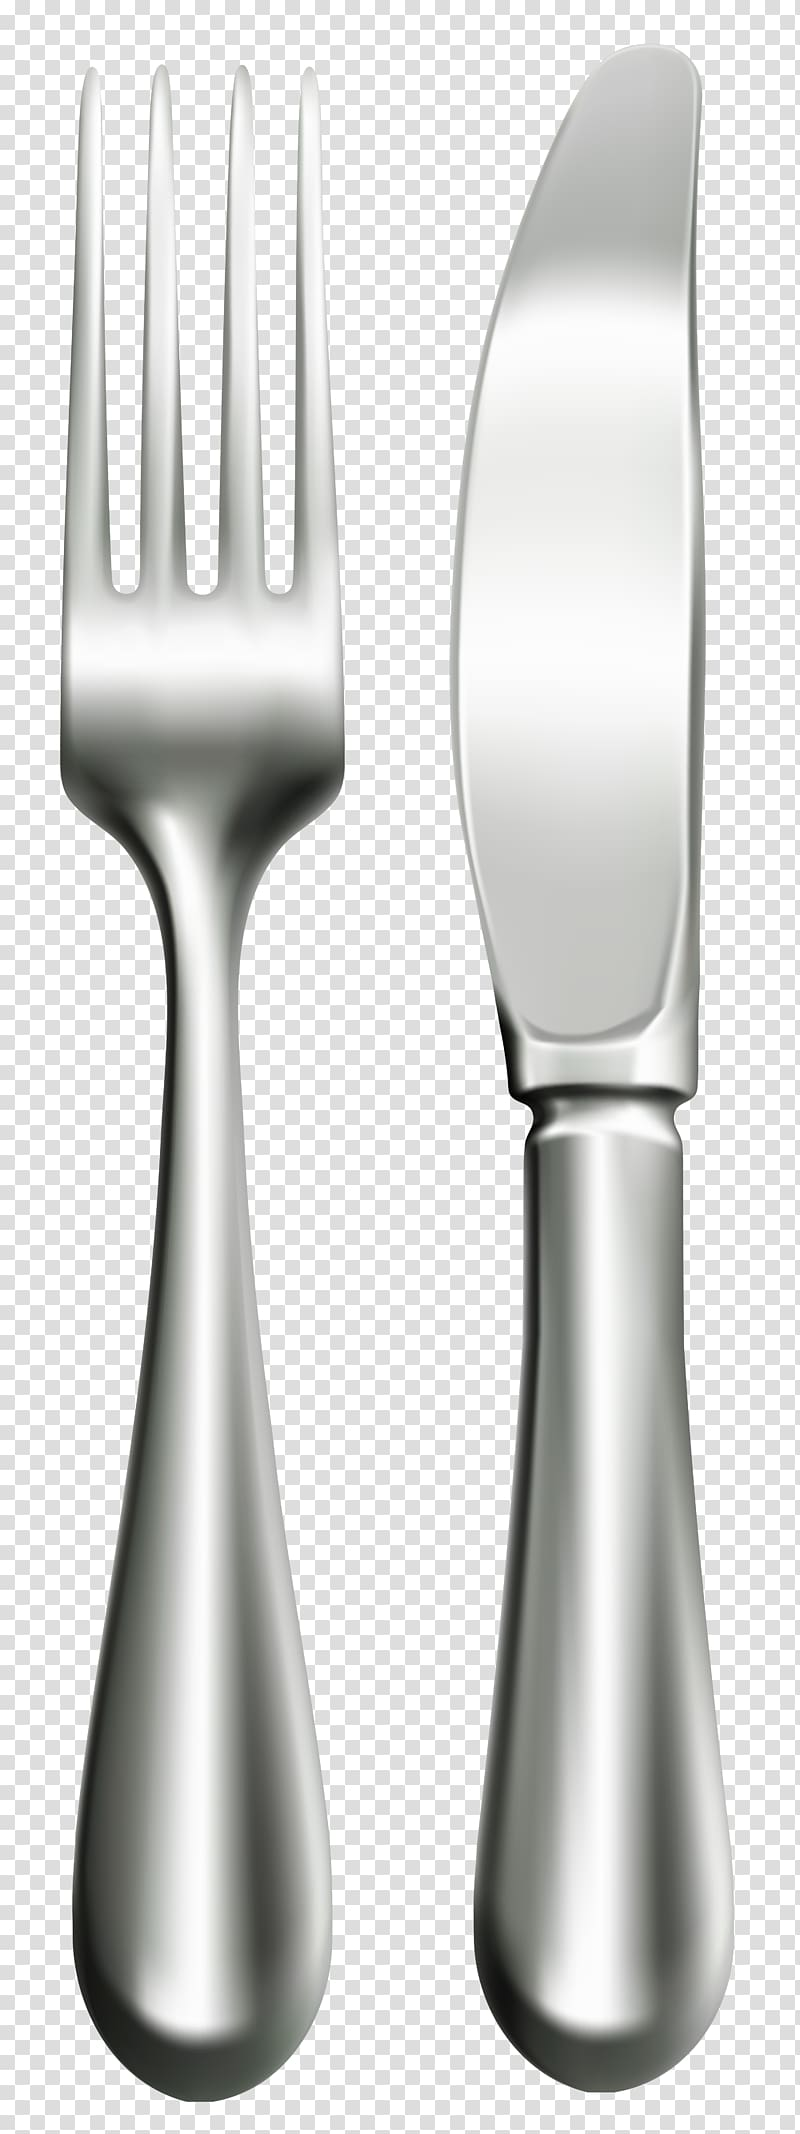 Knife clipart metal. Fork spoon kitchen knives